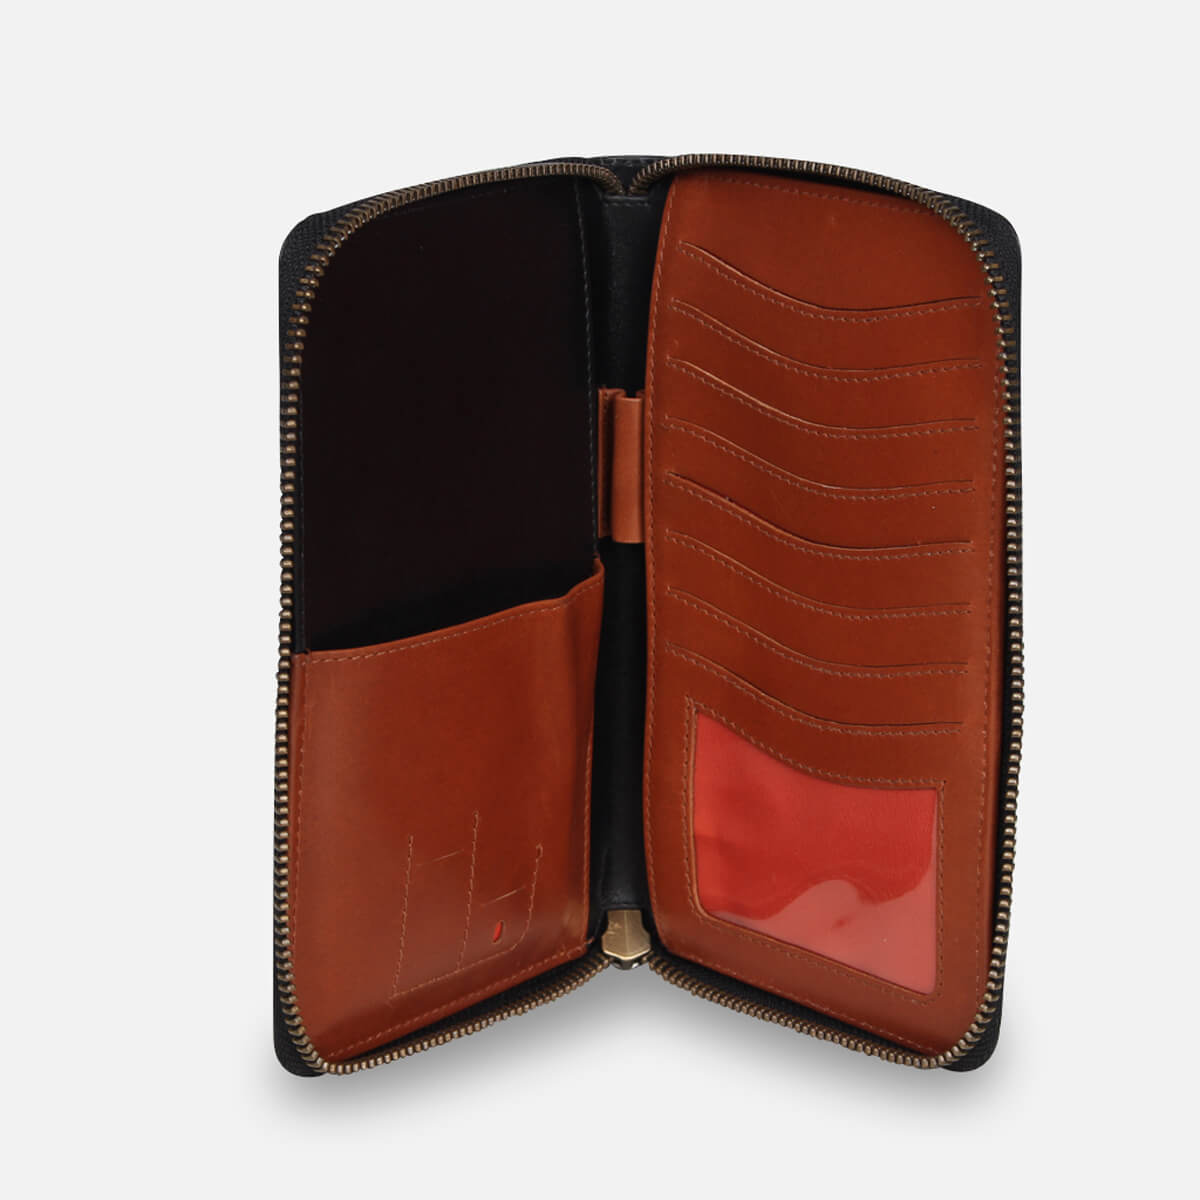 Blaise Leather RFID Secure Travel Wallet